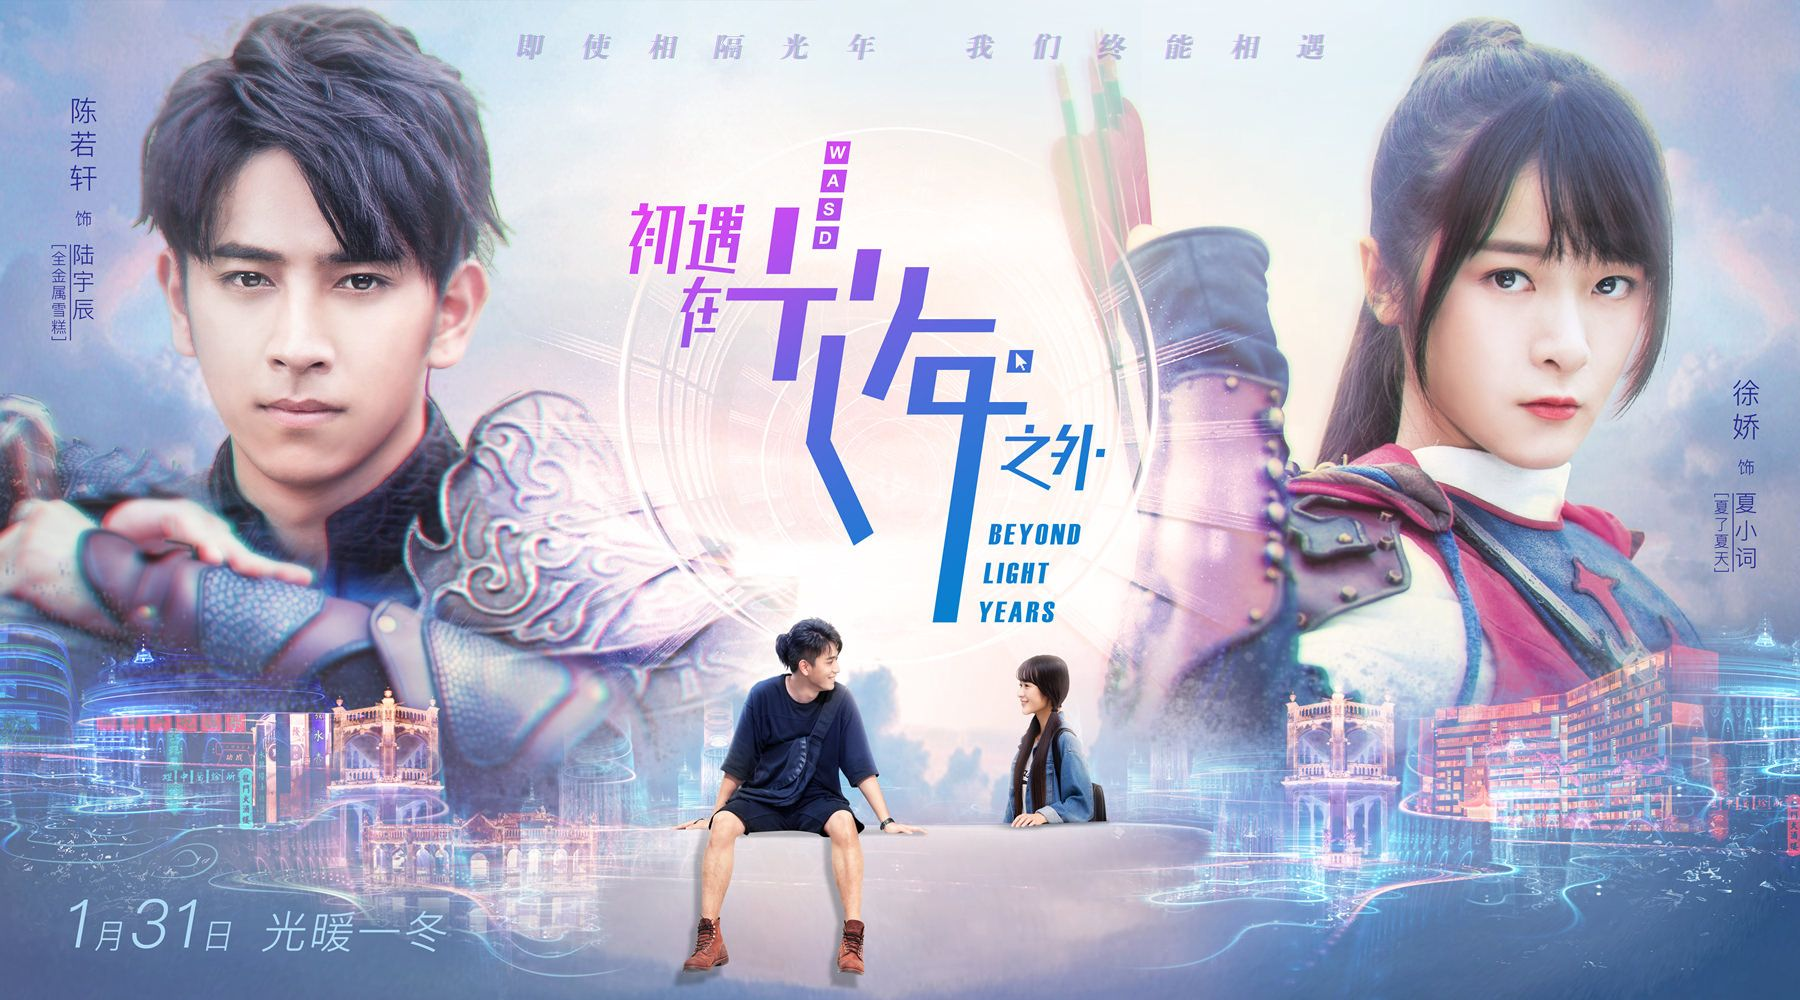 Beyond Light Years Capitulo 1 Sub Espanol Completo Online Hd Drama Japones Dramas Coreanos Ver Drama Coreano Watch asian tv shows and movies online for free! beyond light years capitulo 1 sub